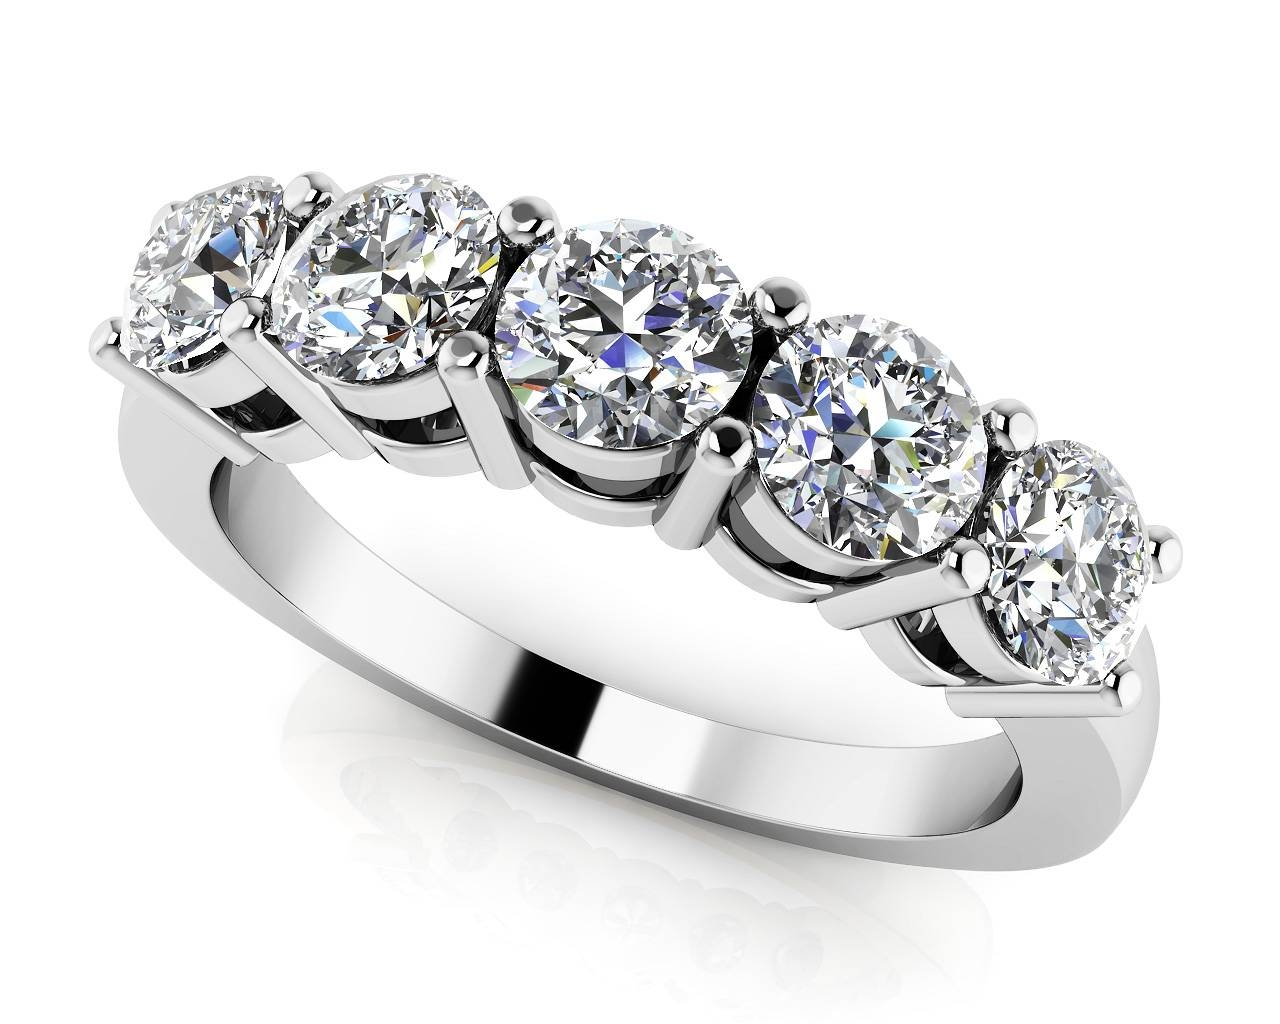 Wedding Rings : Cheap Anniversary Rings For Her 30Th Anniversary Within 2018 30Th Anniversary Rings (View 15 of 25)